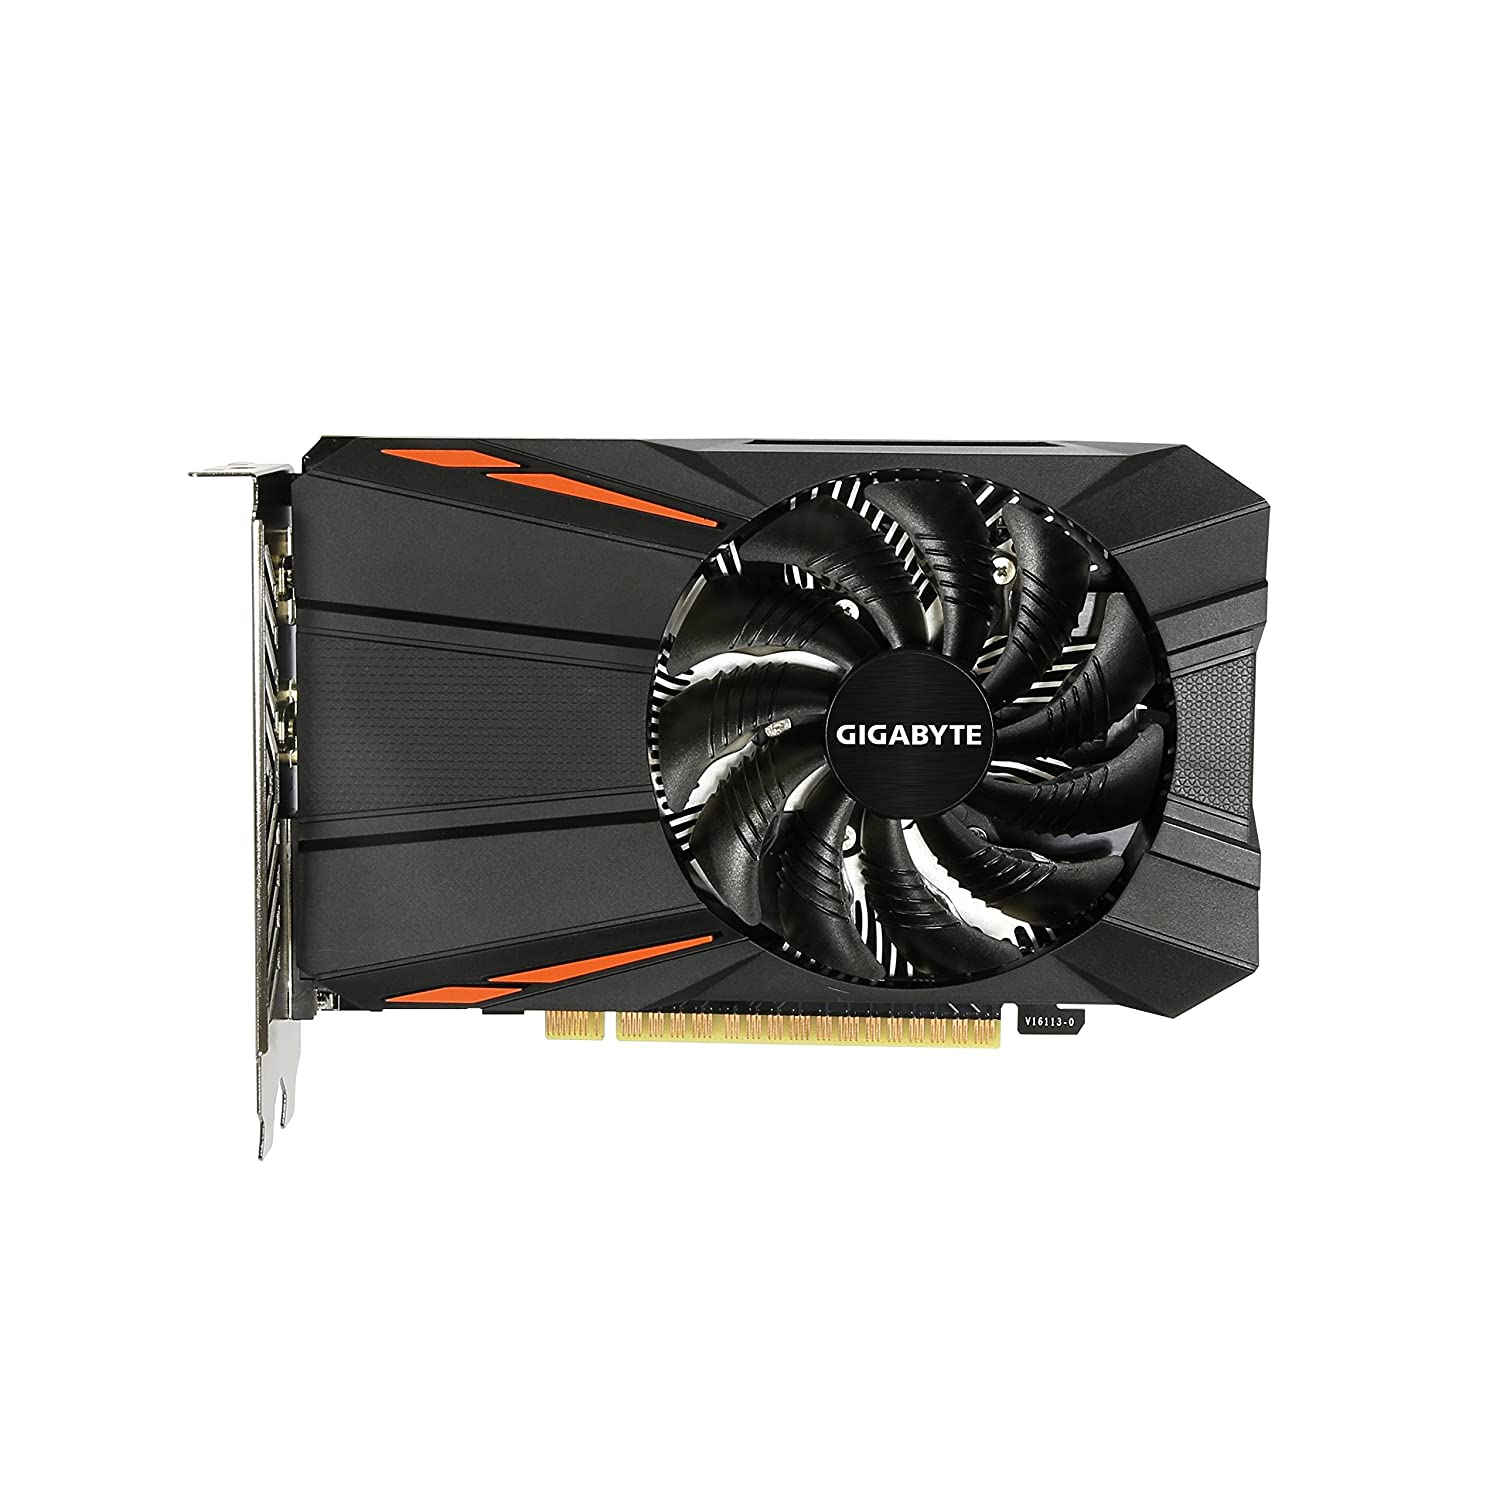 [Best] Graphics Card Under ₹20,000 in India [Apr. 2021] 2